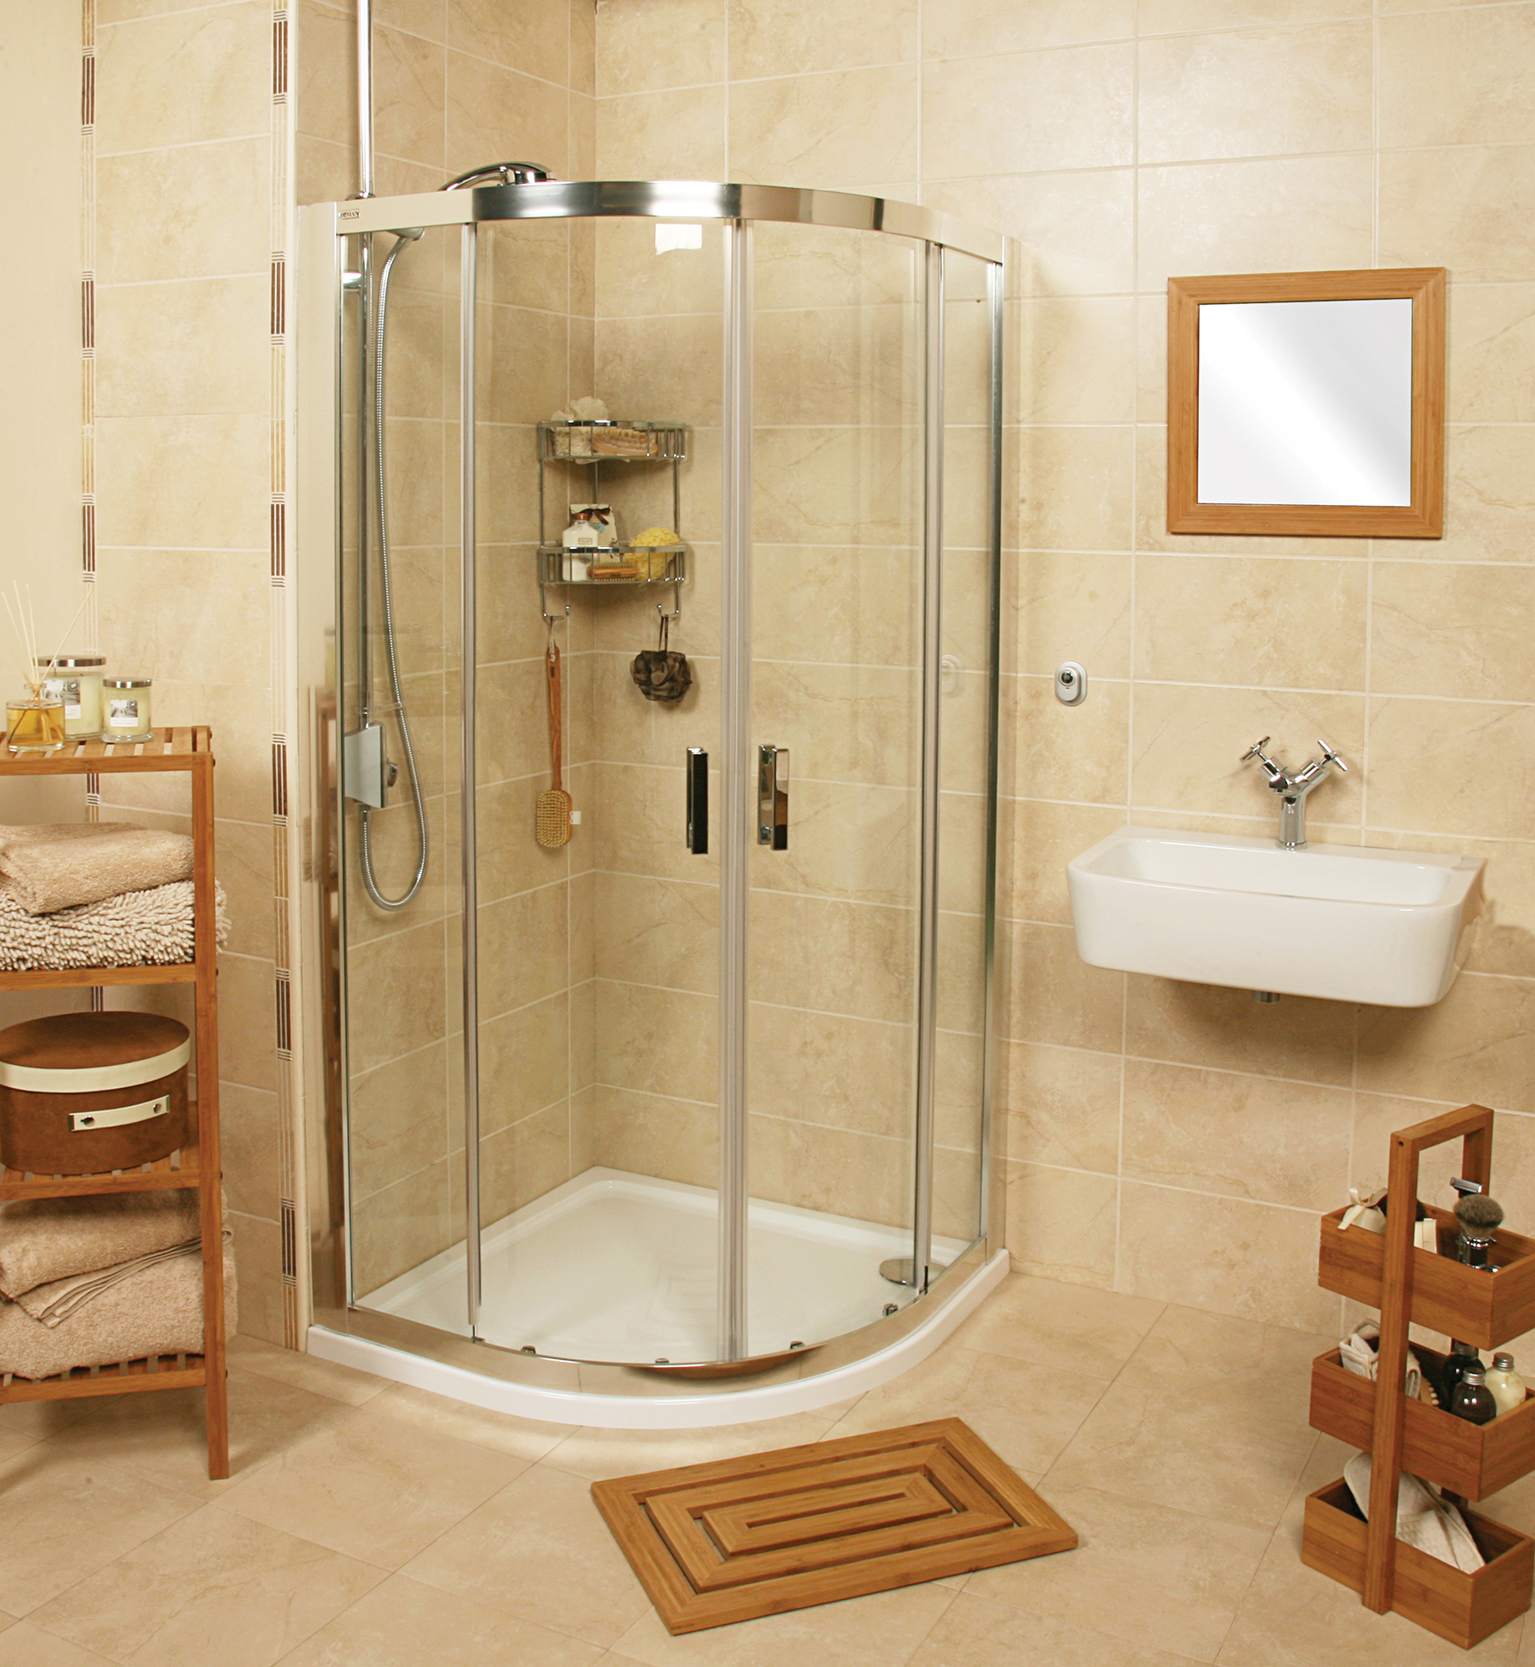 Summer 2016 Roman Showers Look Touch Feel The Quality